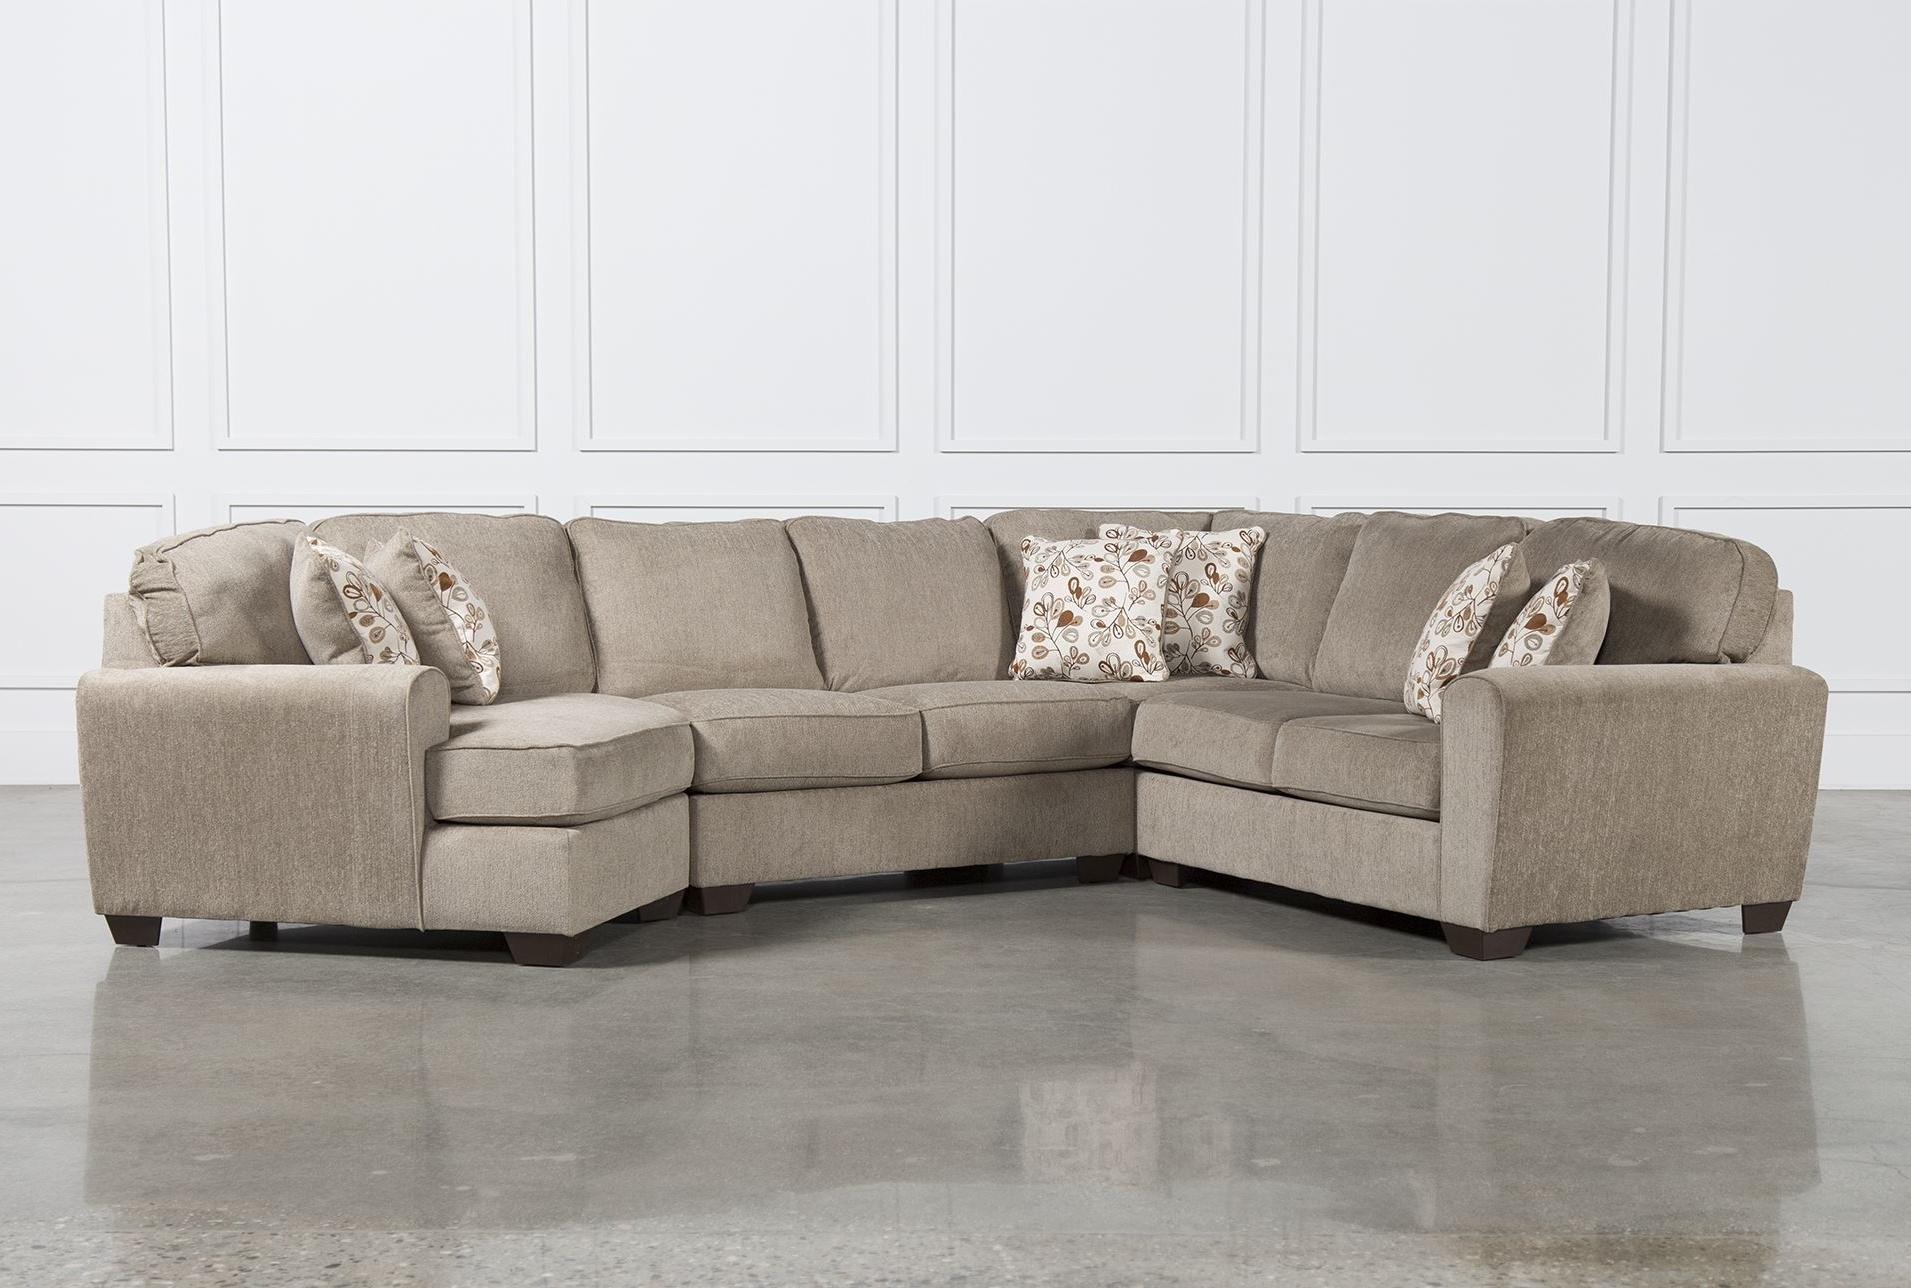 Preferred Patola Park 4 Piece Sectional W Raf Cuddler Living Spaces In Sofa Throughout Living Spaces Sectional Sofas (View 14 of 15)